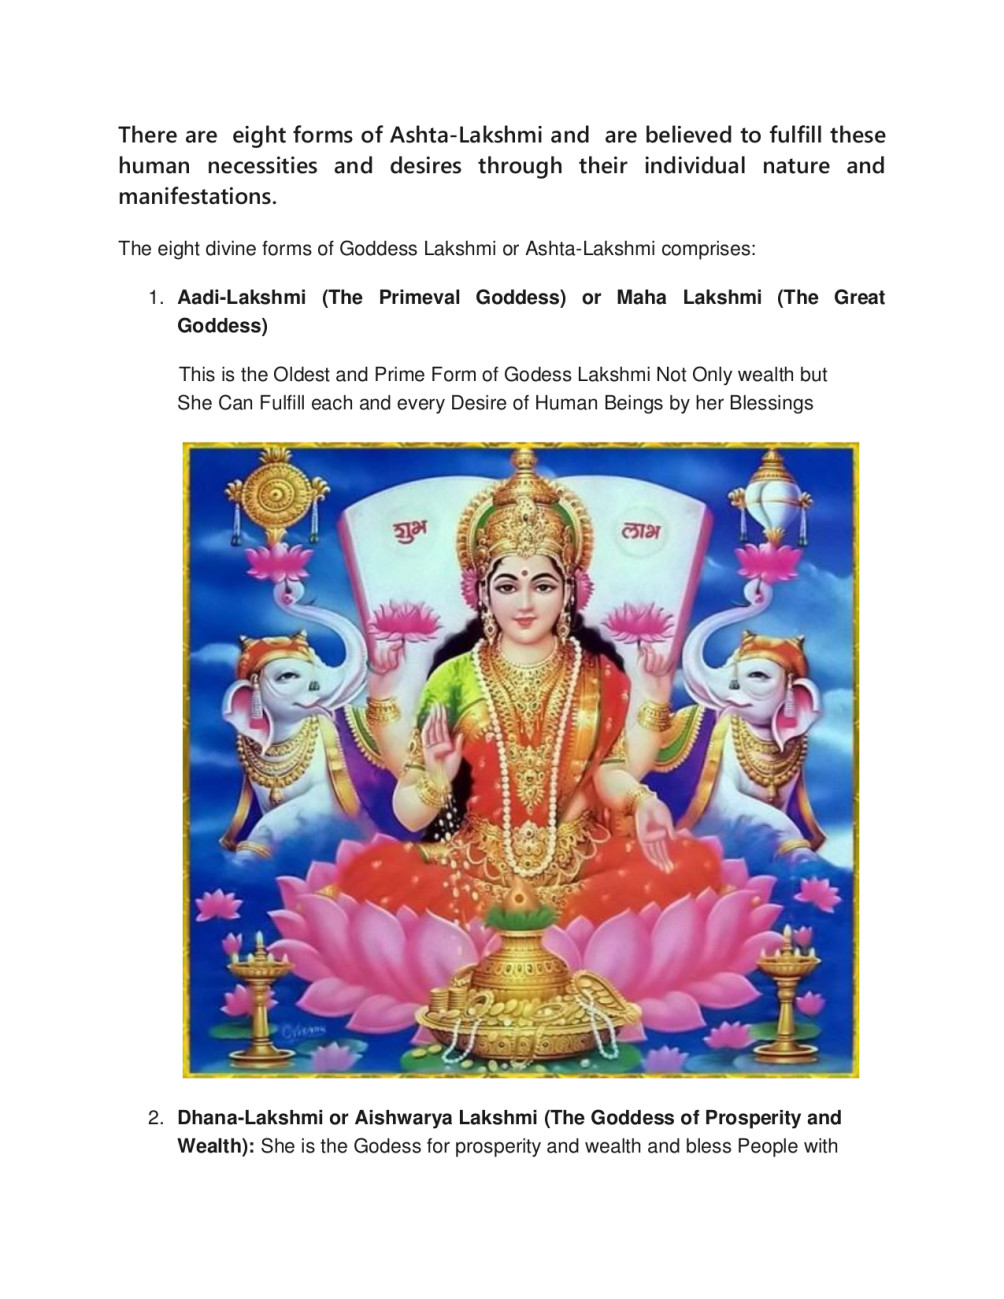 flood money and wealth by spells and lakshmi puja